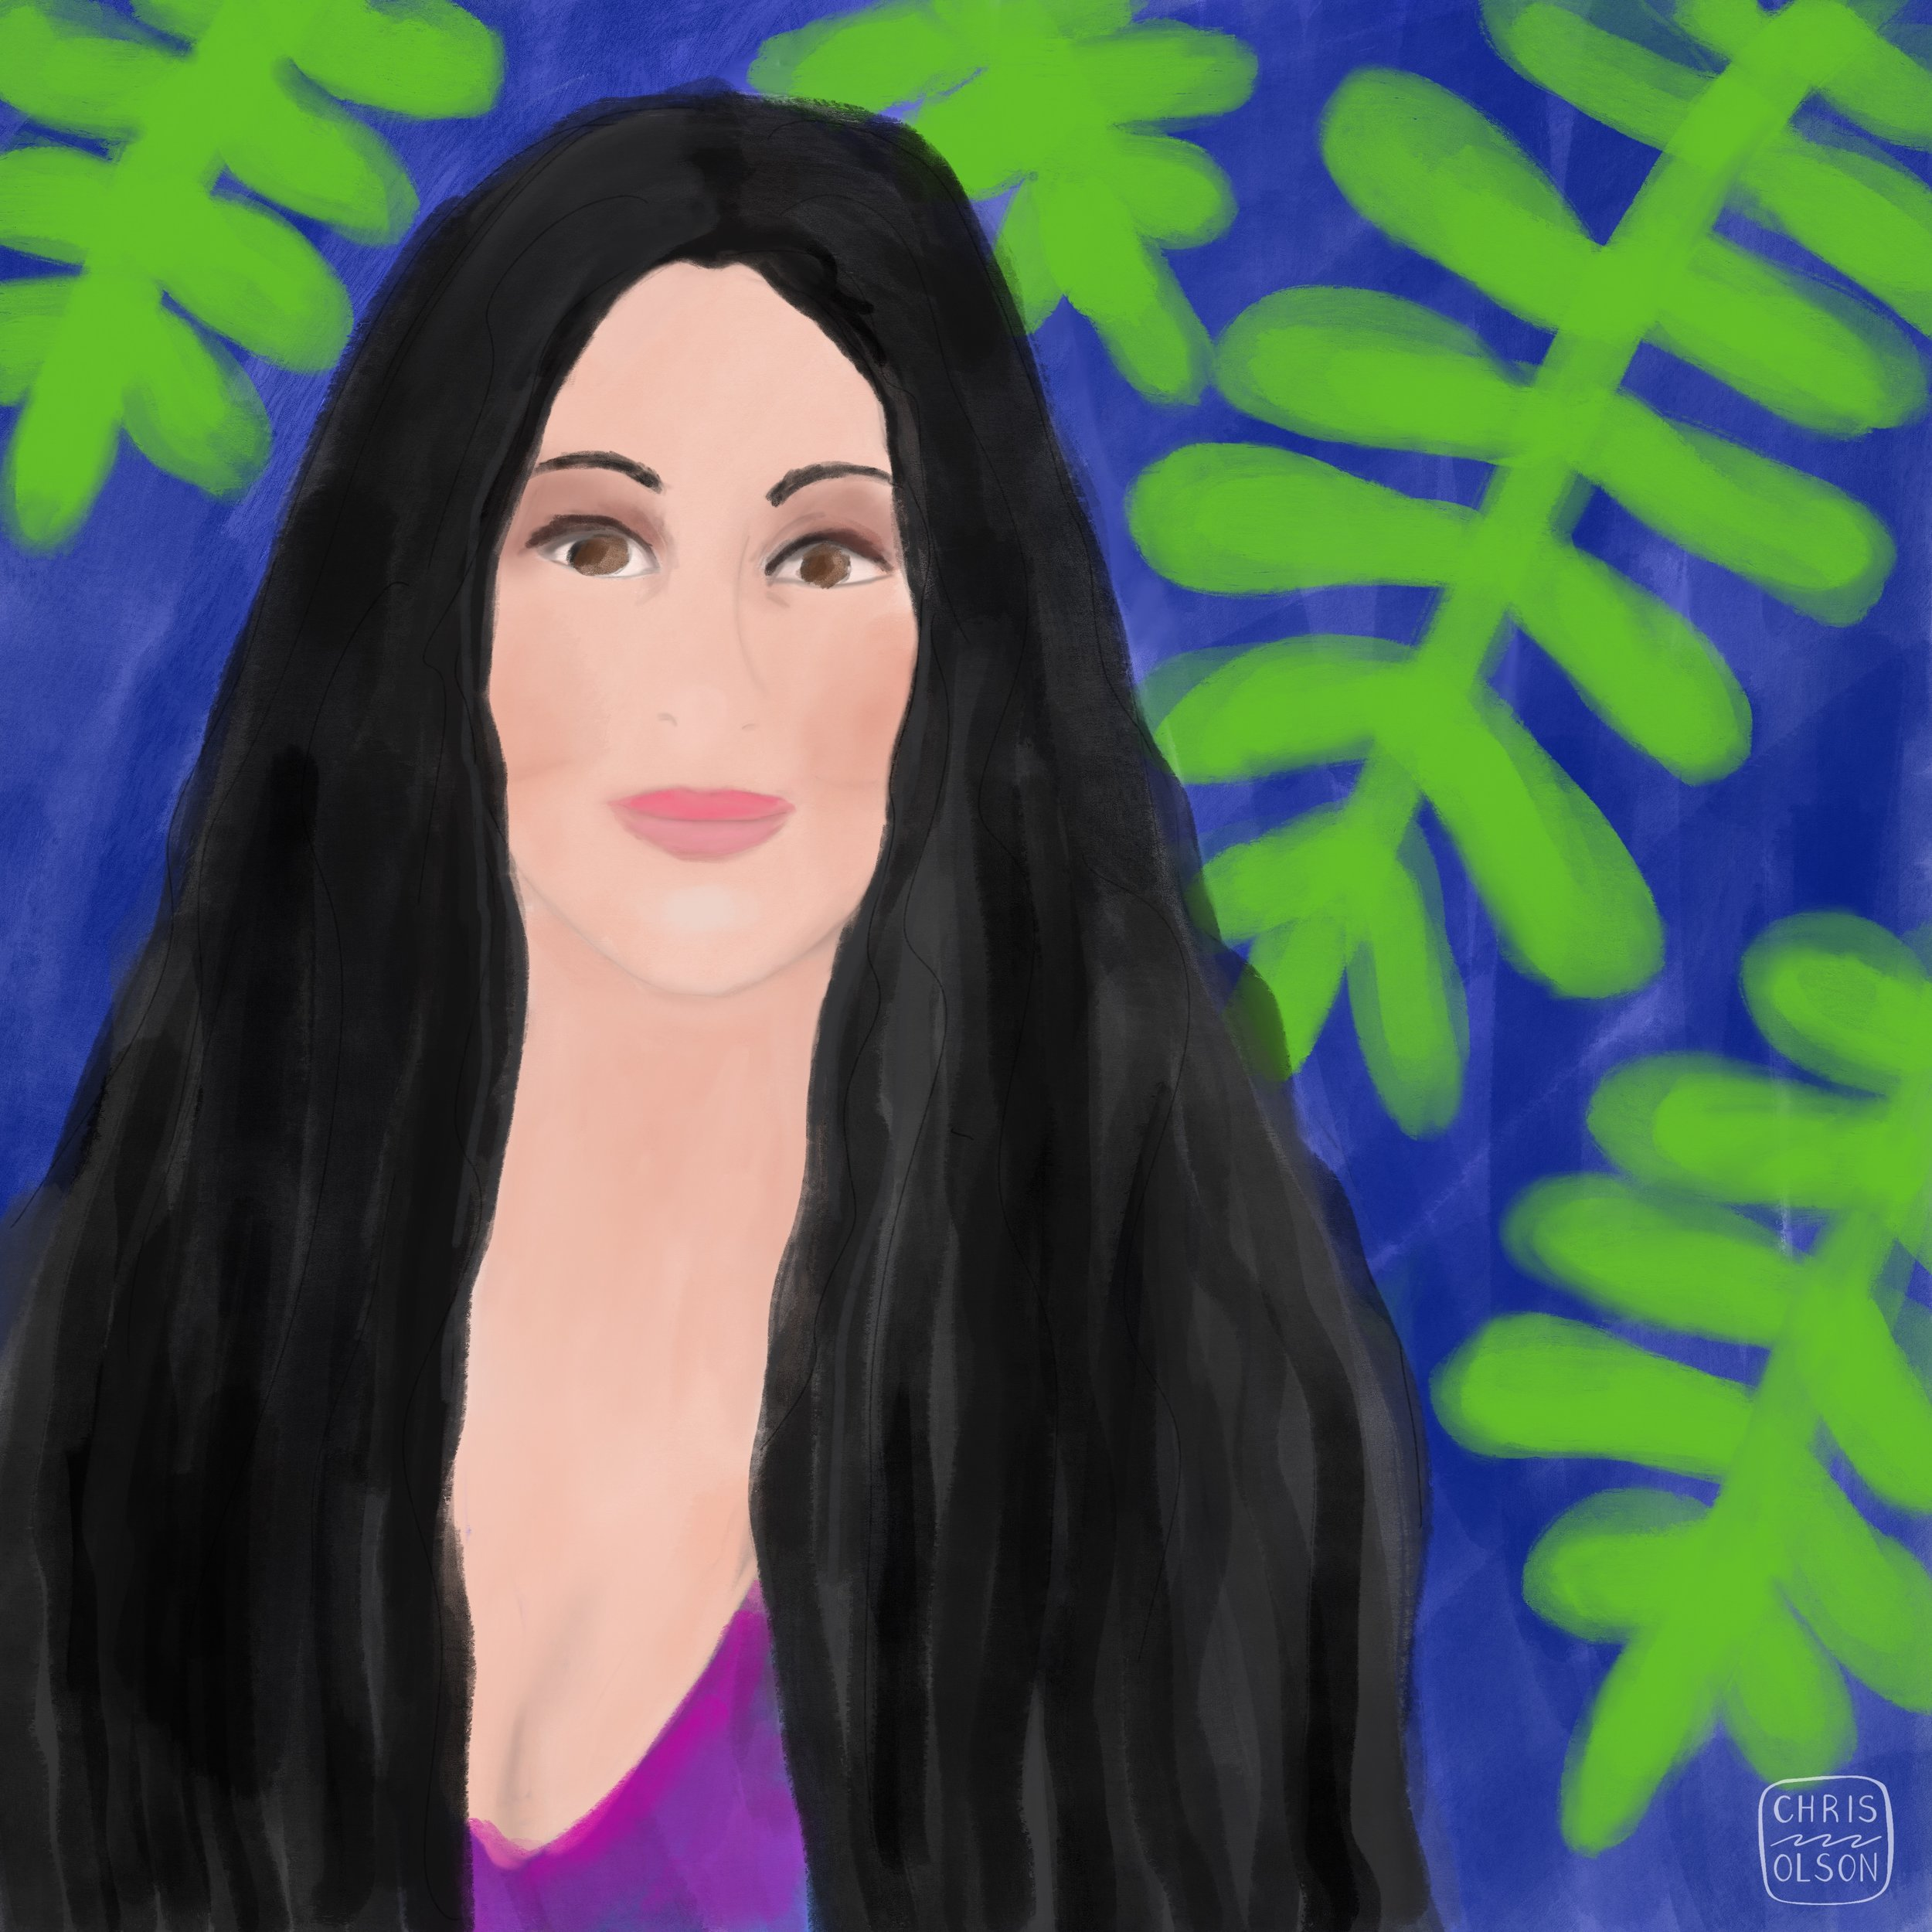 Cher portrait by Chris Olson